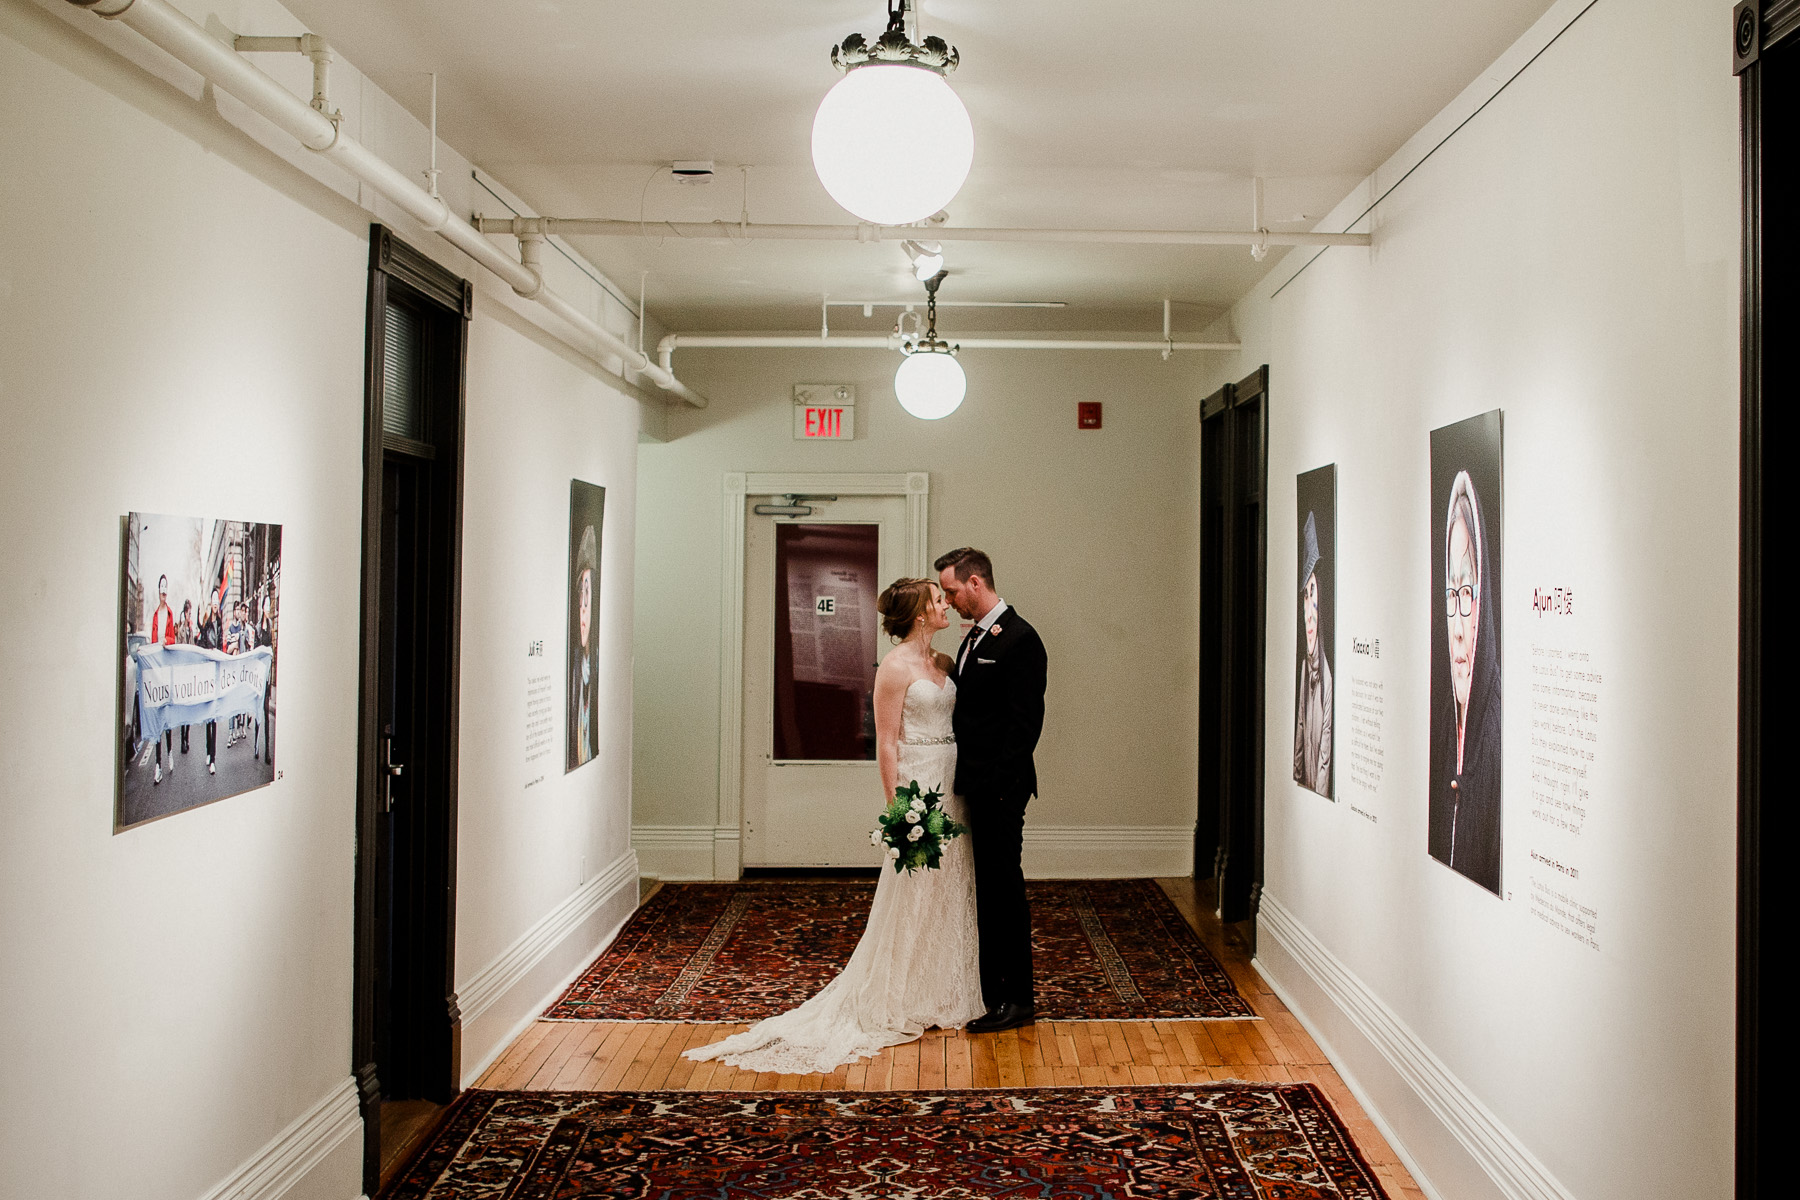 TOP 5 SMALL & HIP WEDDING VENUES IN TORONTO